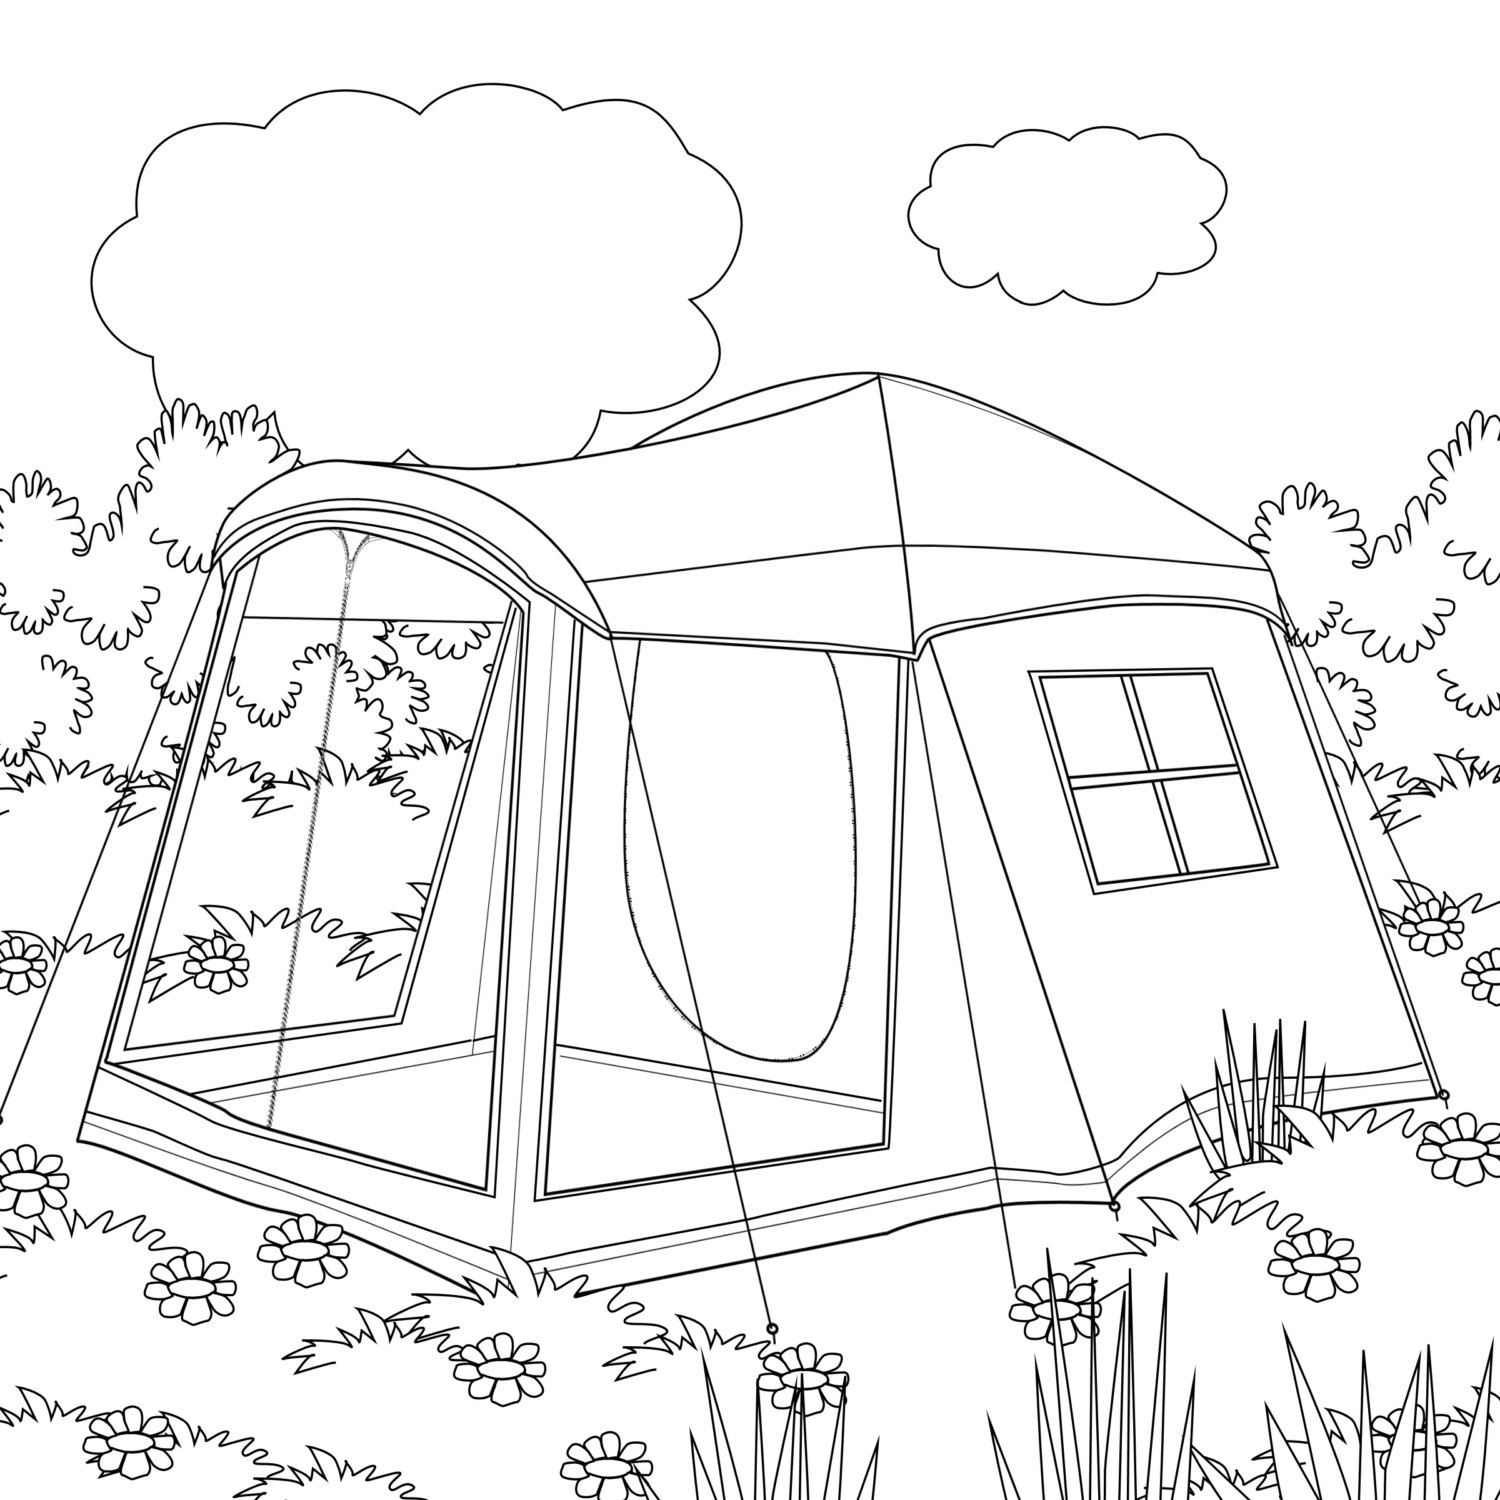 Printable Coloring Page Zentangle Camping Coloring Book Etsy In 2020 Coloring Pages Coloring Books Princess Coloring Pages